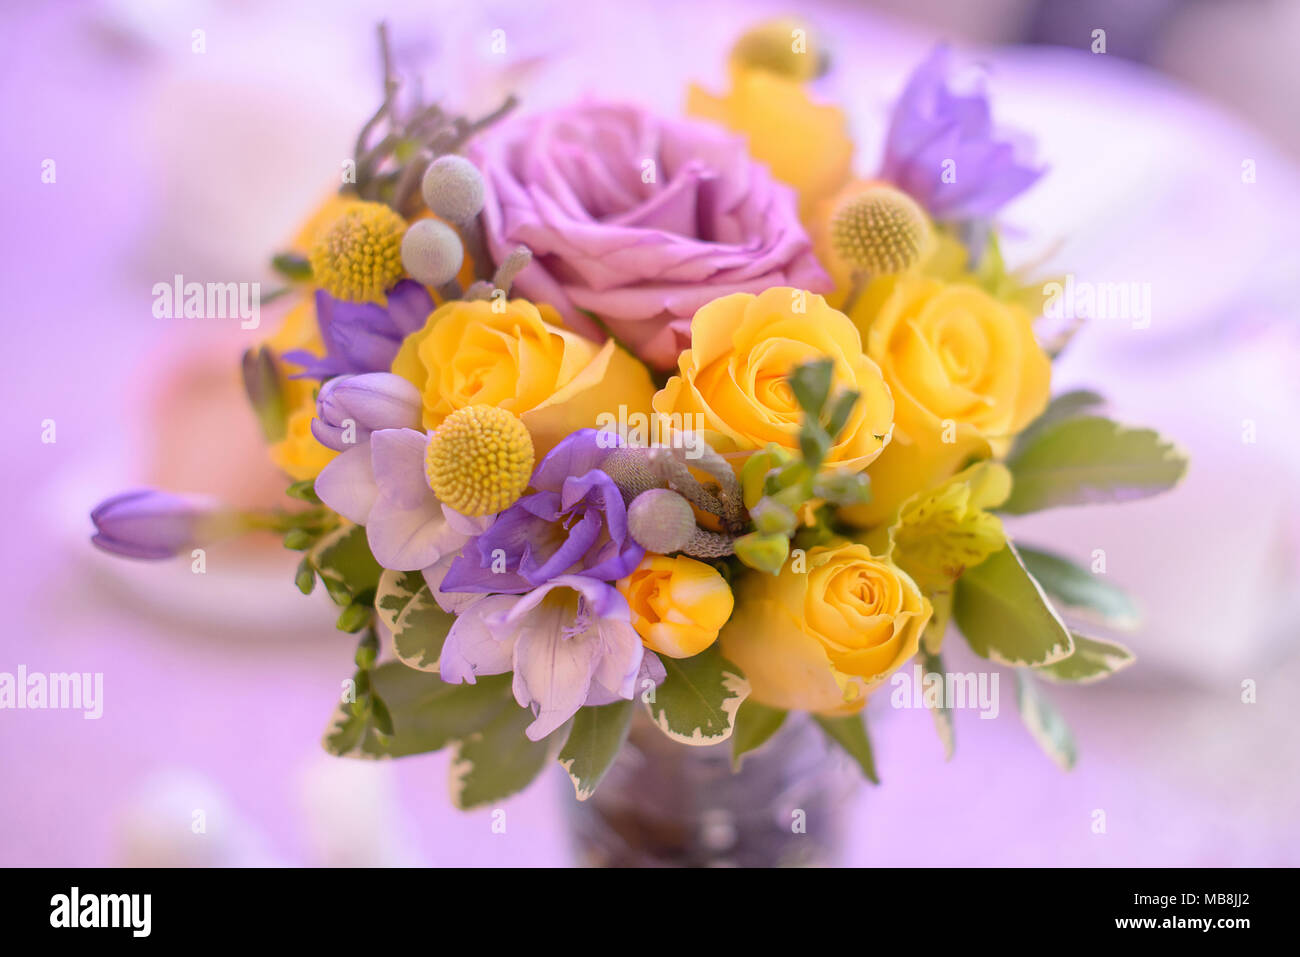 Fancy Colored Floral Arrangement With Bright Yellow And Purple Roses